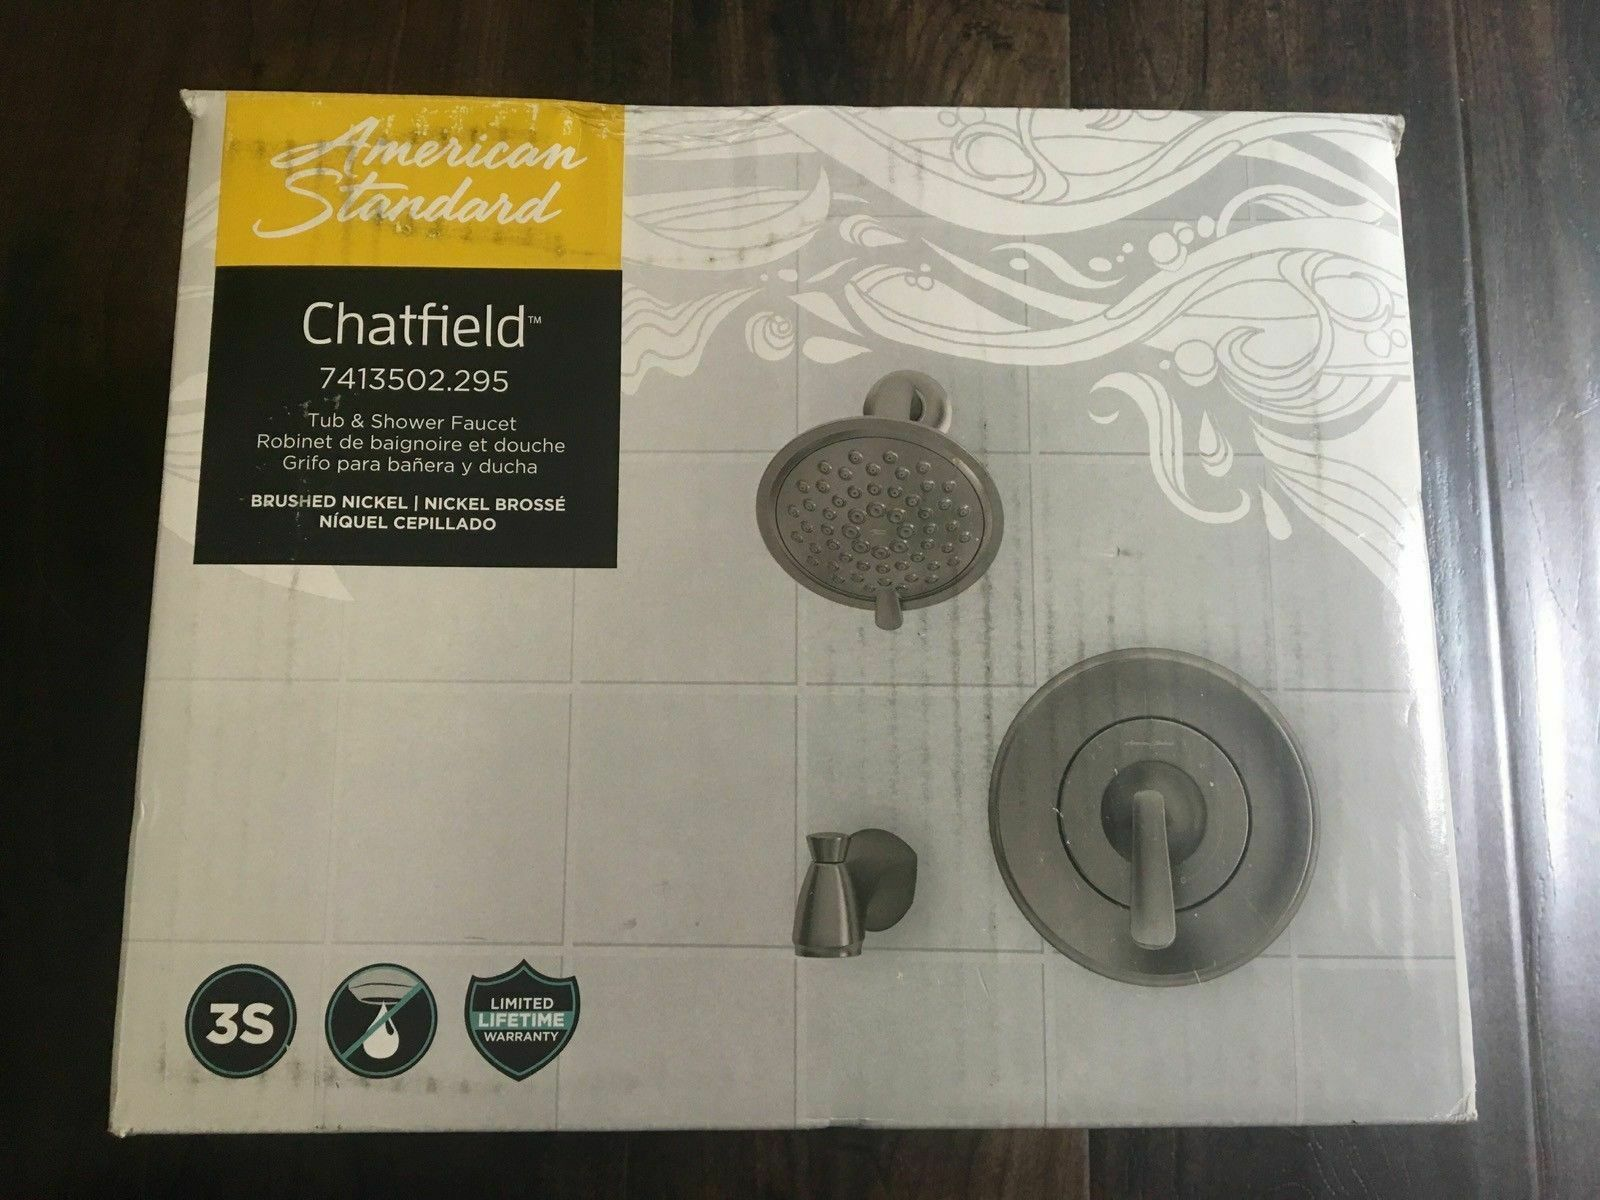 American Standard Chatfield Tub Shower Faucet Valve Brushed Nickel 7413502 295 Kitchen Faucets Ideas Of K Shower Faucet Tub And Shower Faucets Shower Tub